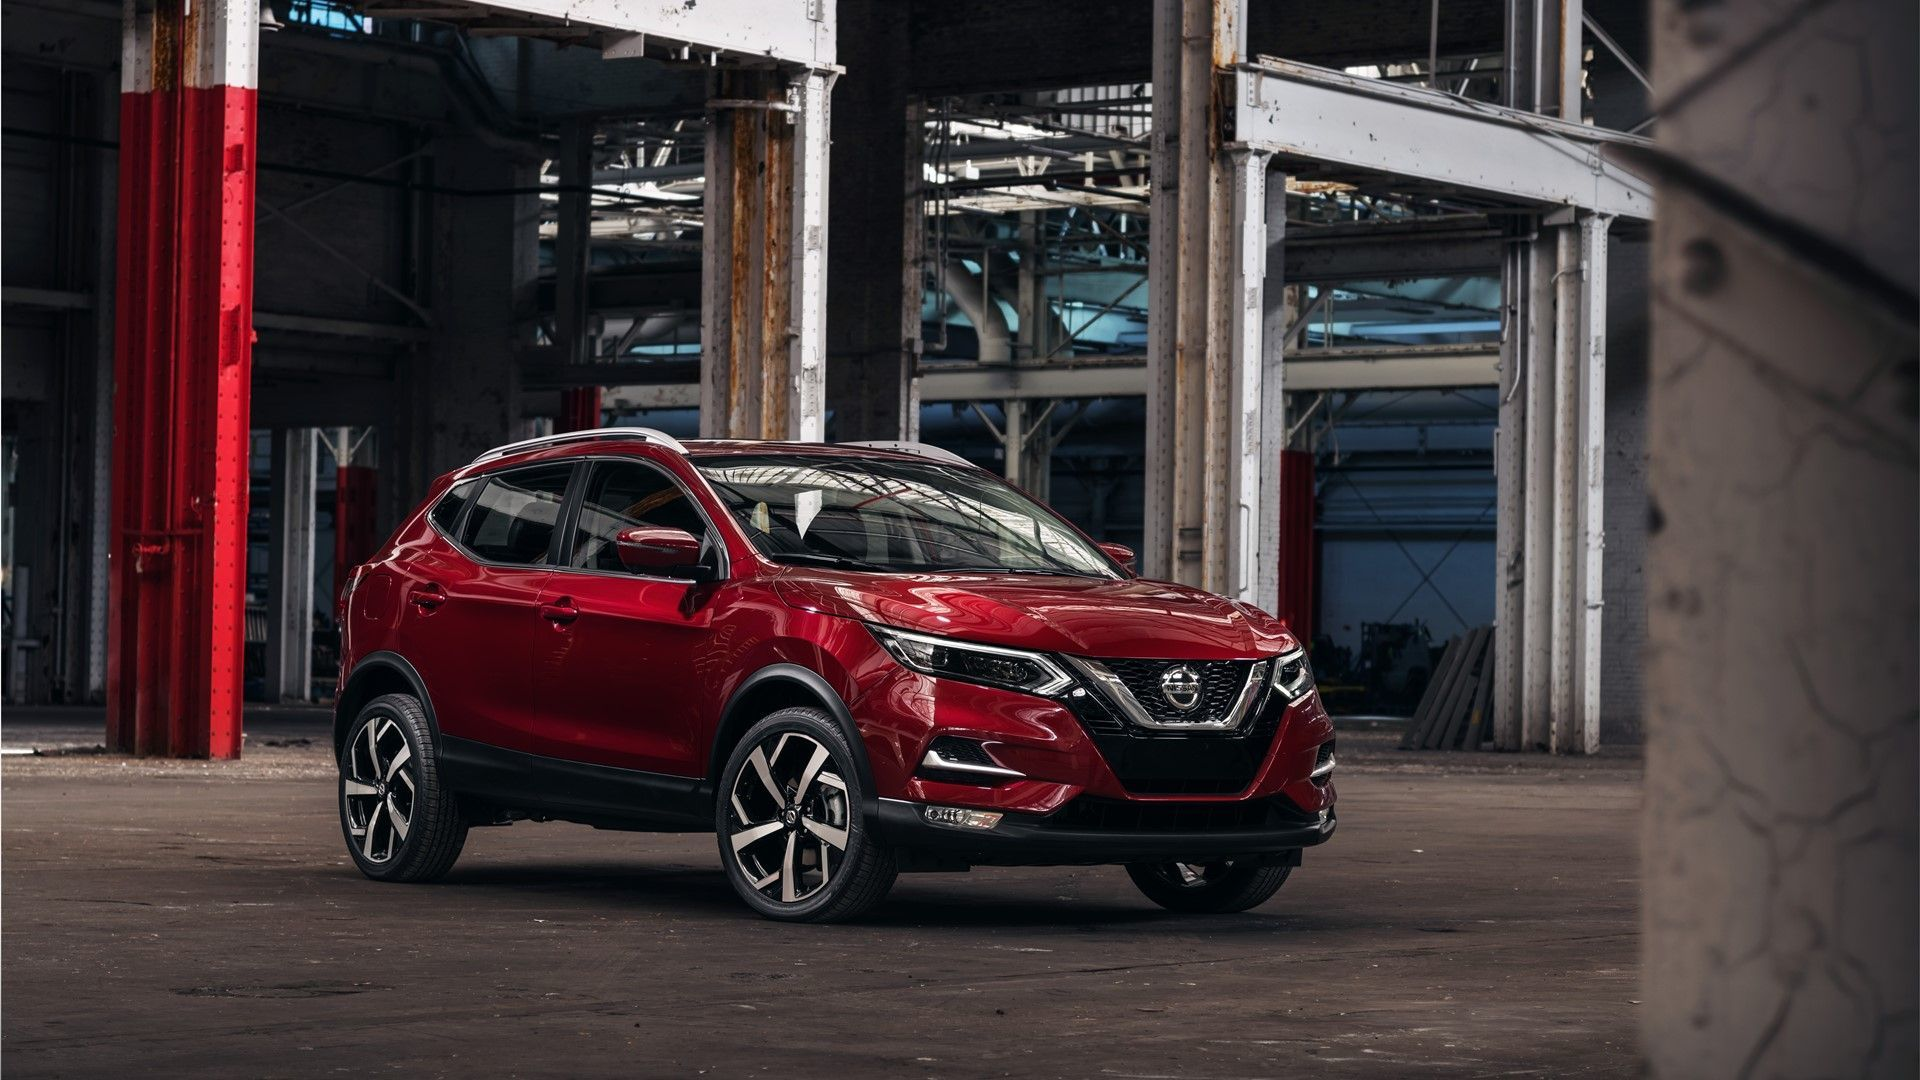 2020 Nissan Qashqai Unveiled in Chicago